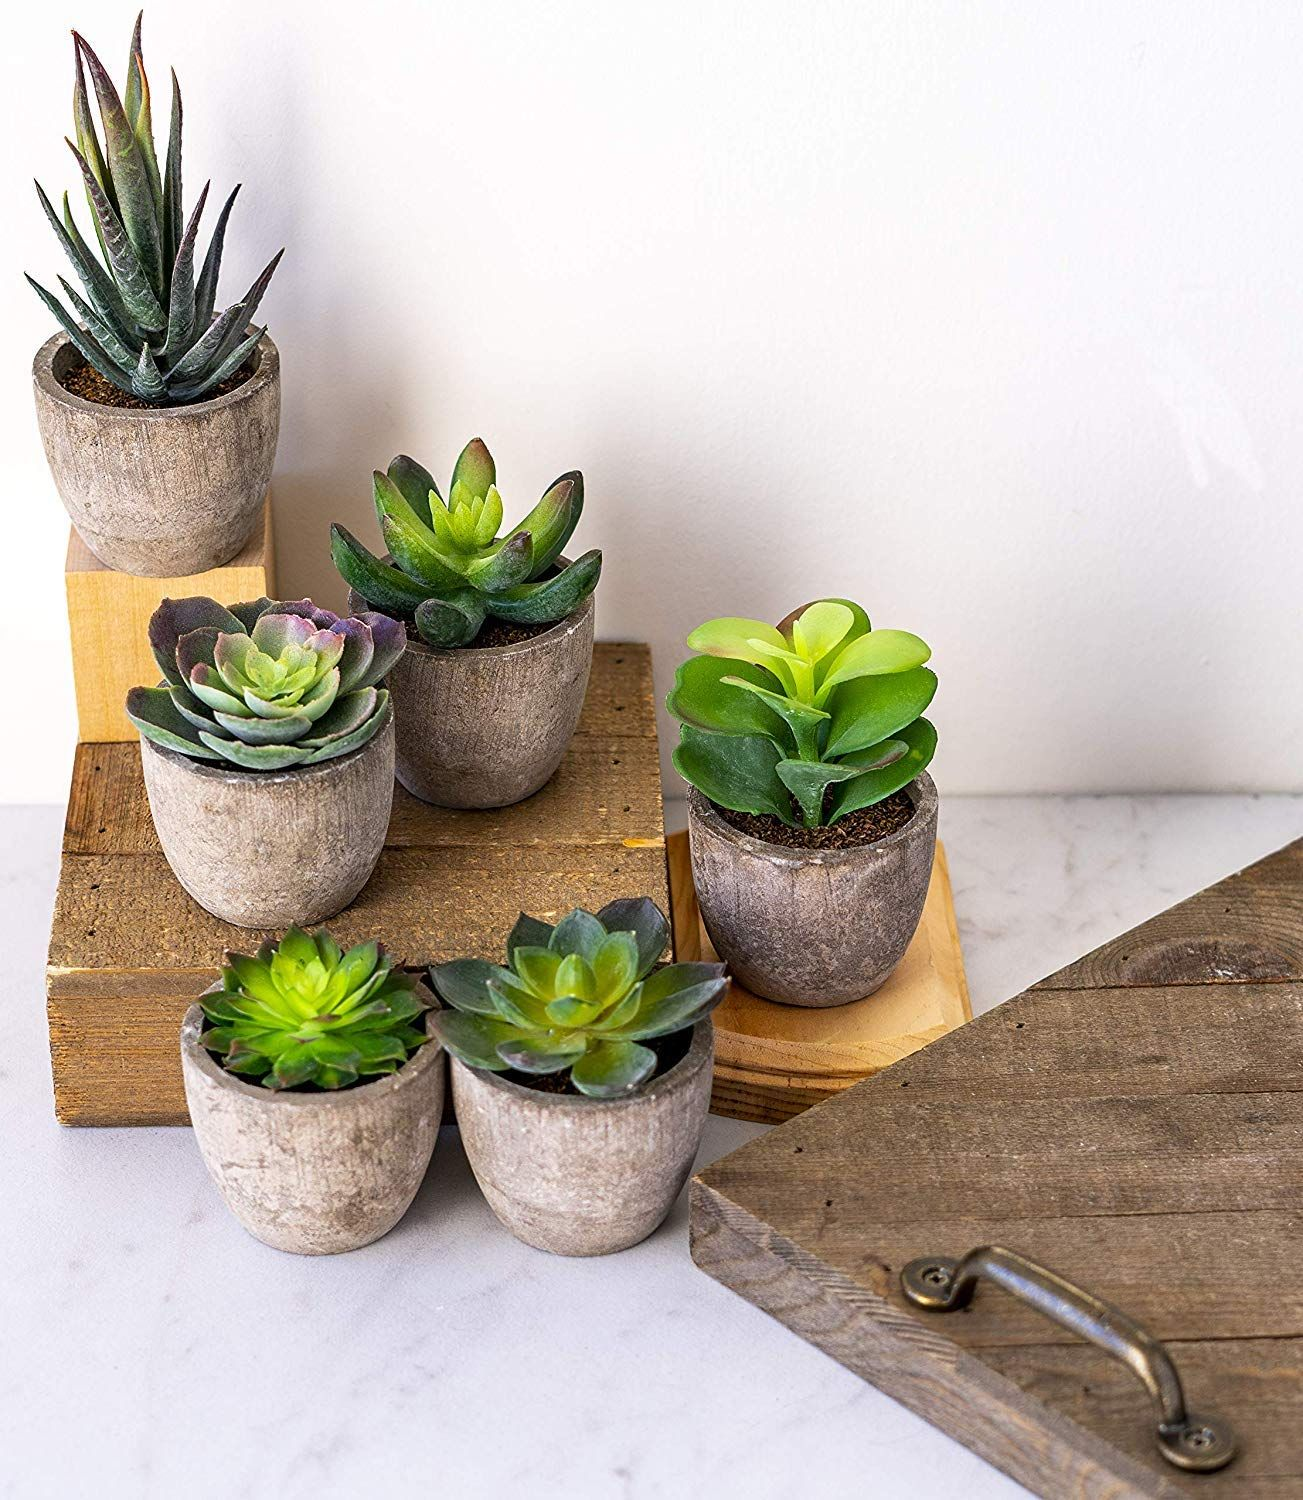 Variety Set Of Fake Succulent Plants Faux Succulents In Pot Etsy In 2020 Succulents Decor Artificial Succulent Plants Small Artificial Succulents